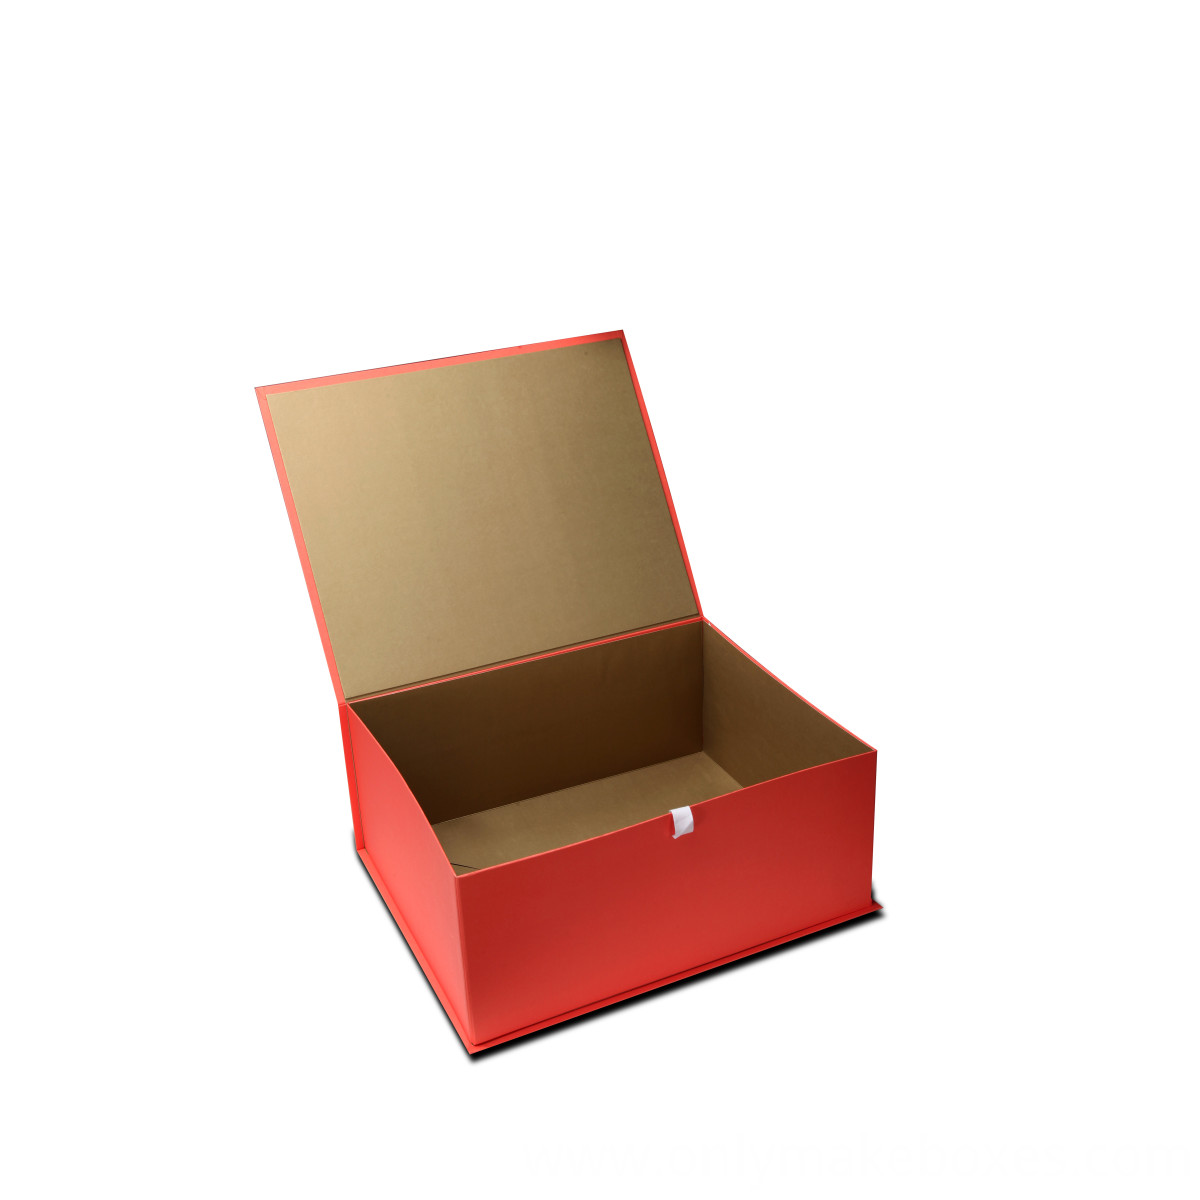 Collapsible Box with side way folding and ribbon closure